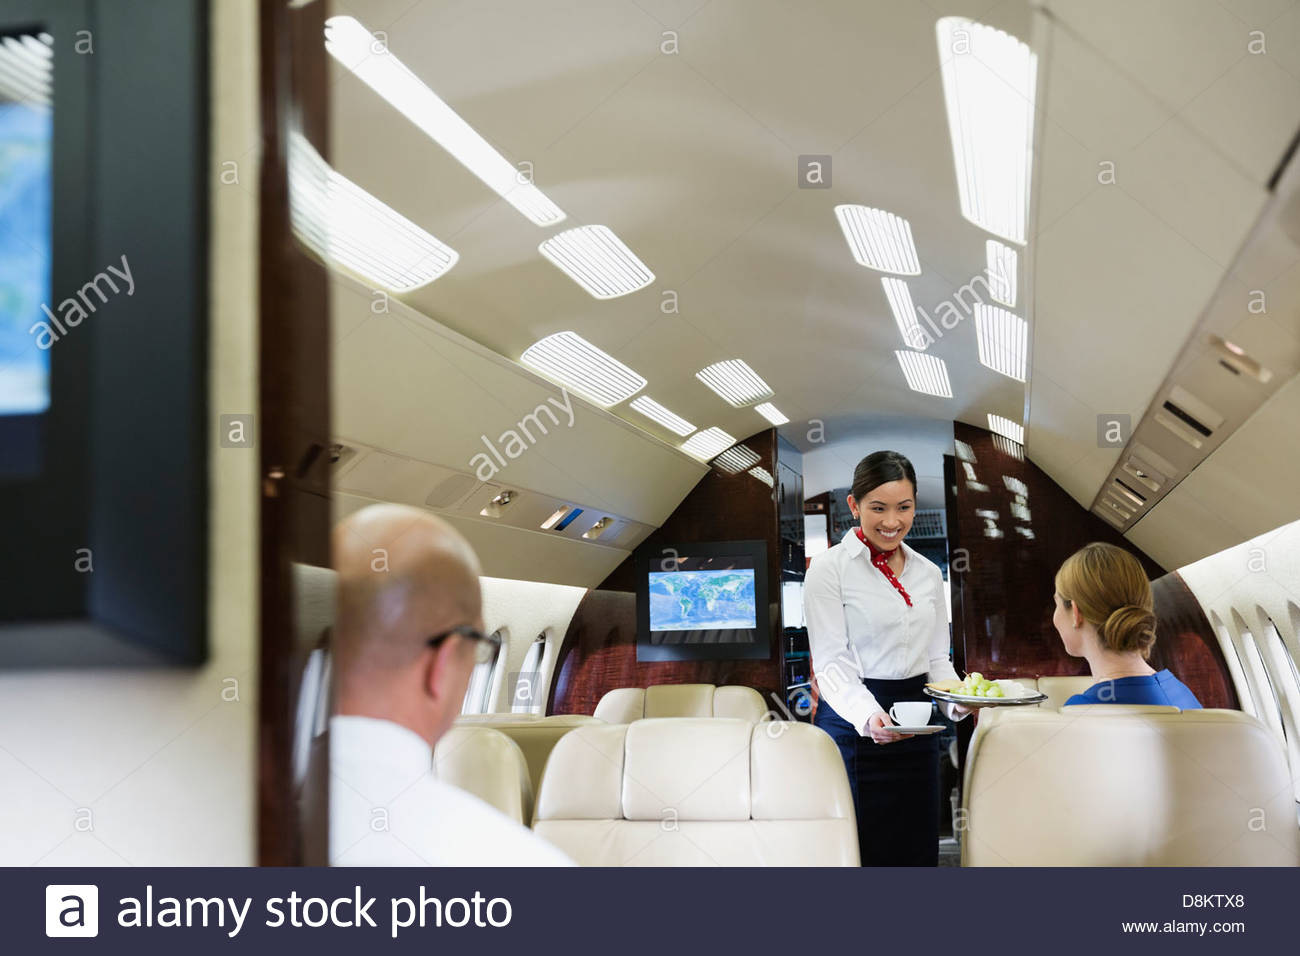 Flight attendant serving food to female passenger in airplane - Stock Image